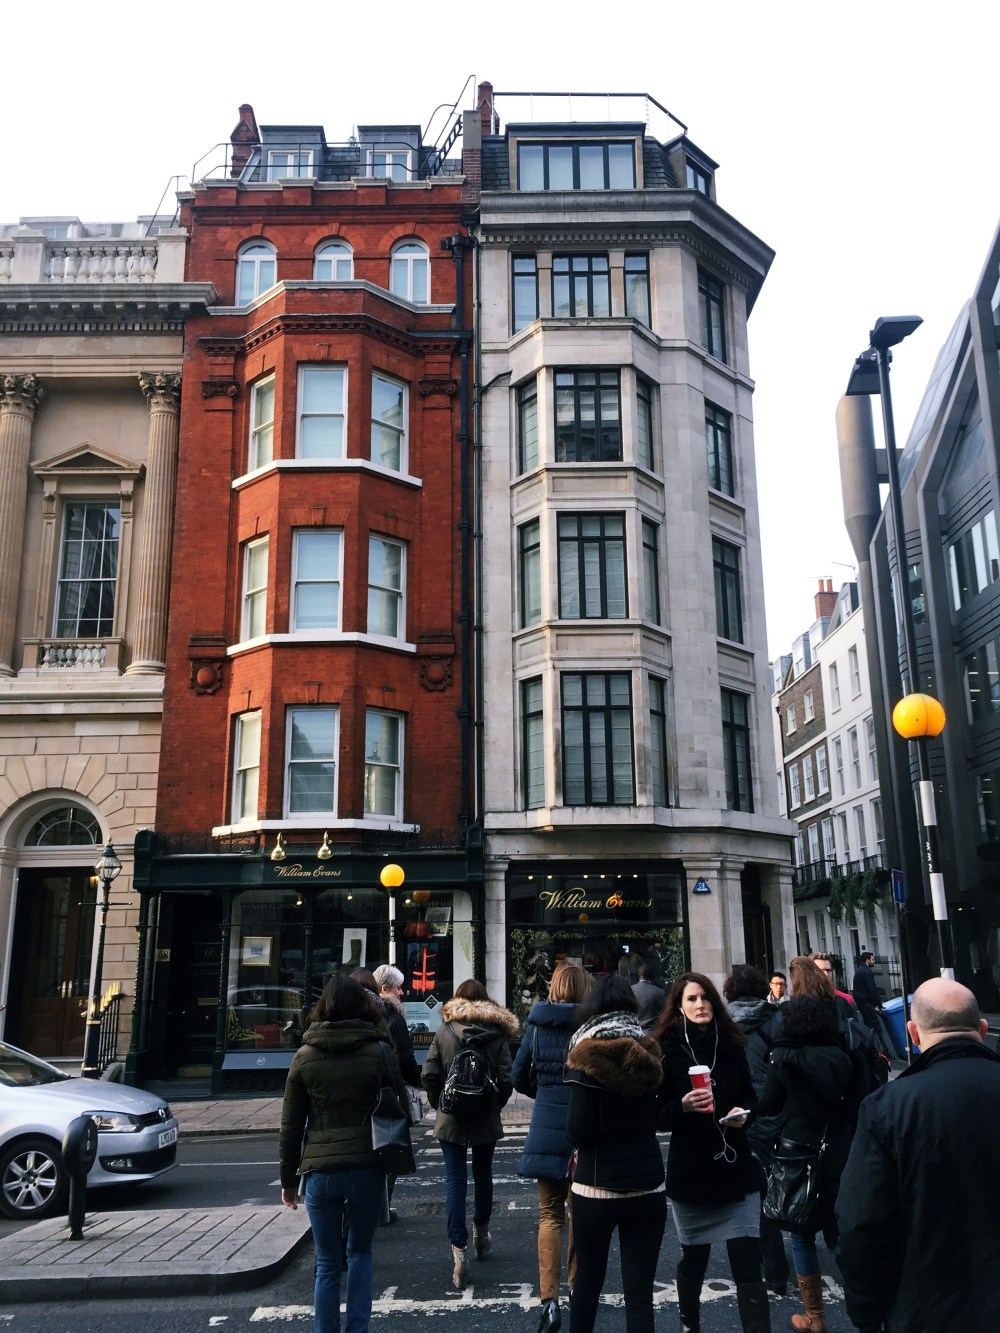 9 Dec 2016: St James's Street | London, England